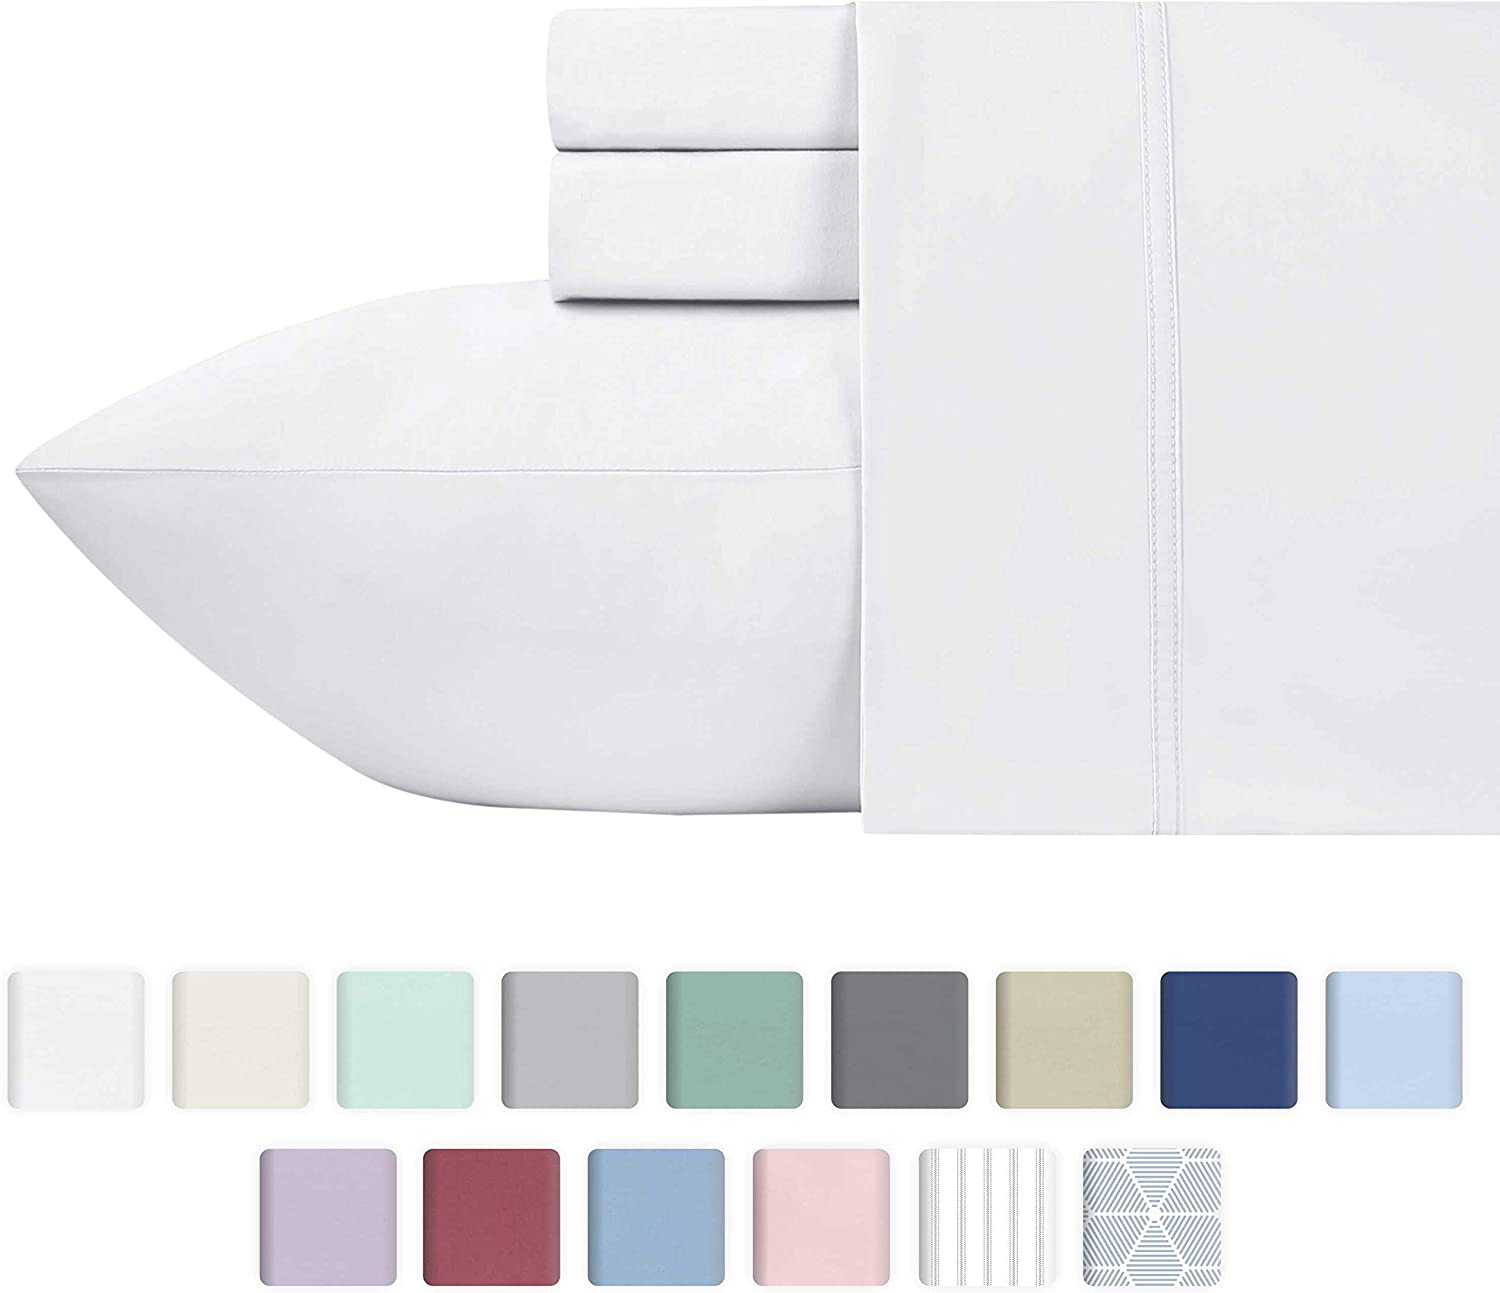 600-Thread-Count 100% Cotton Sheets - Pure White Long Staple Cotton Twin-Sheets for Kids & Adults, Fits Mattress Upto 17'' Deep Pocket, Sateen Weave, Soft Cotton 3 Piece Bed Sheet Set